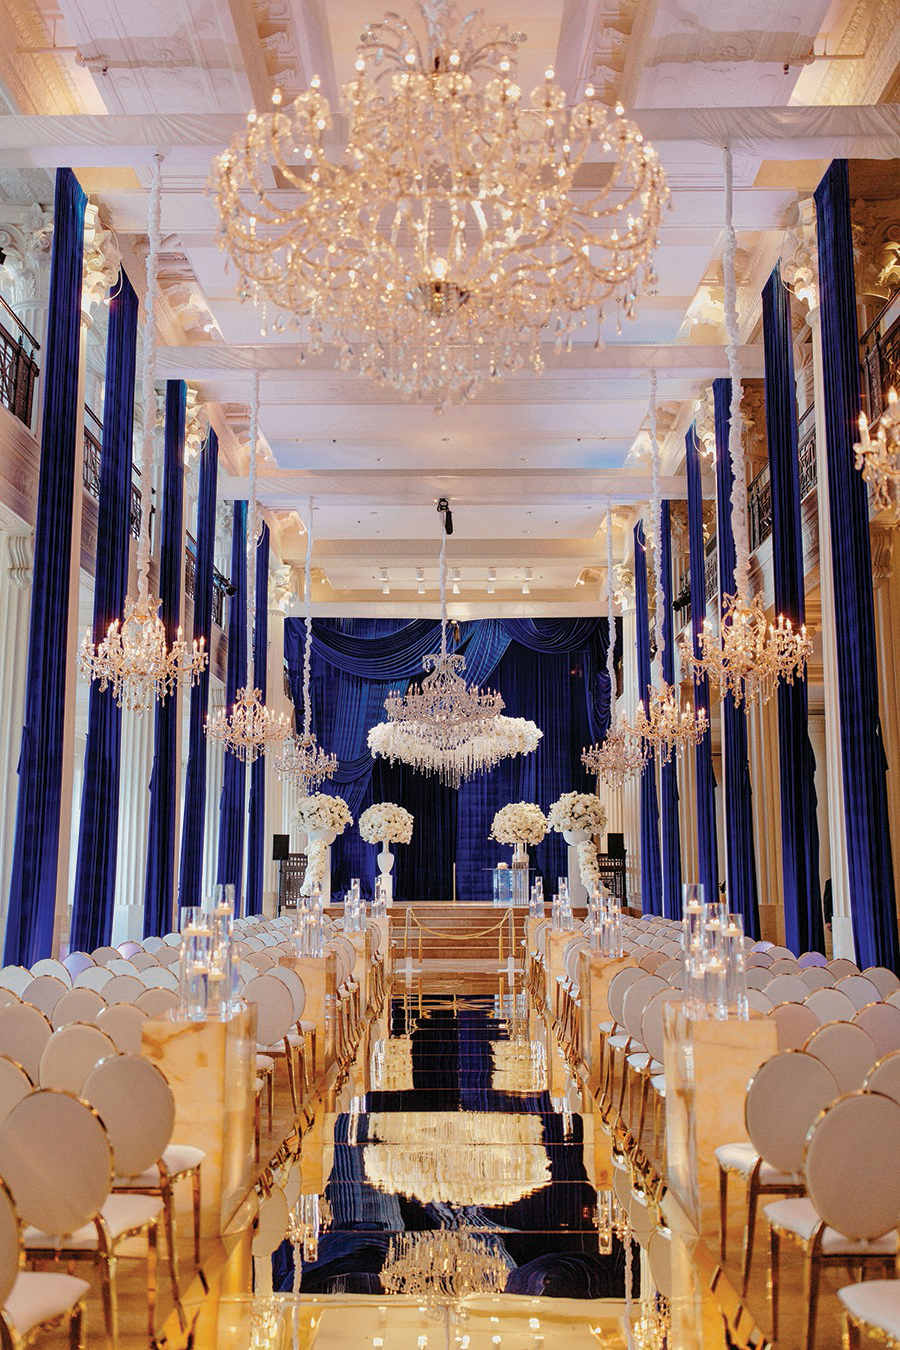 corinthian, elegant, wedding, houston, sparklers, cakes, luxury, cieling, floral ring, columns